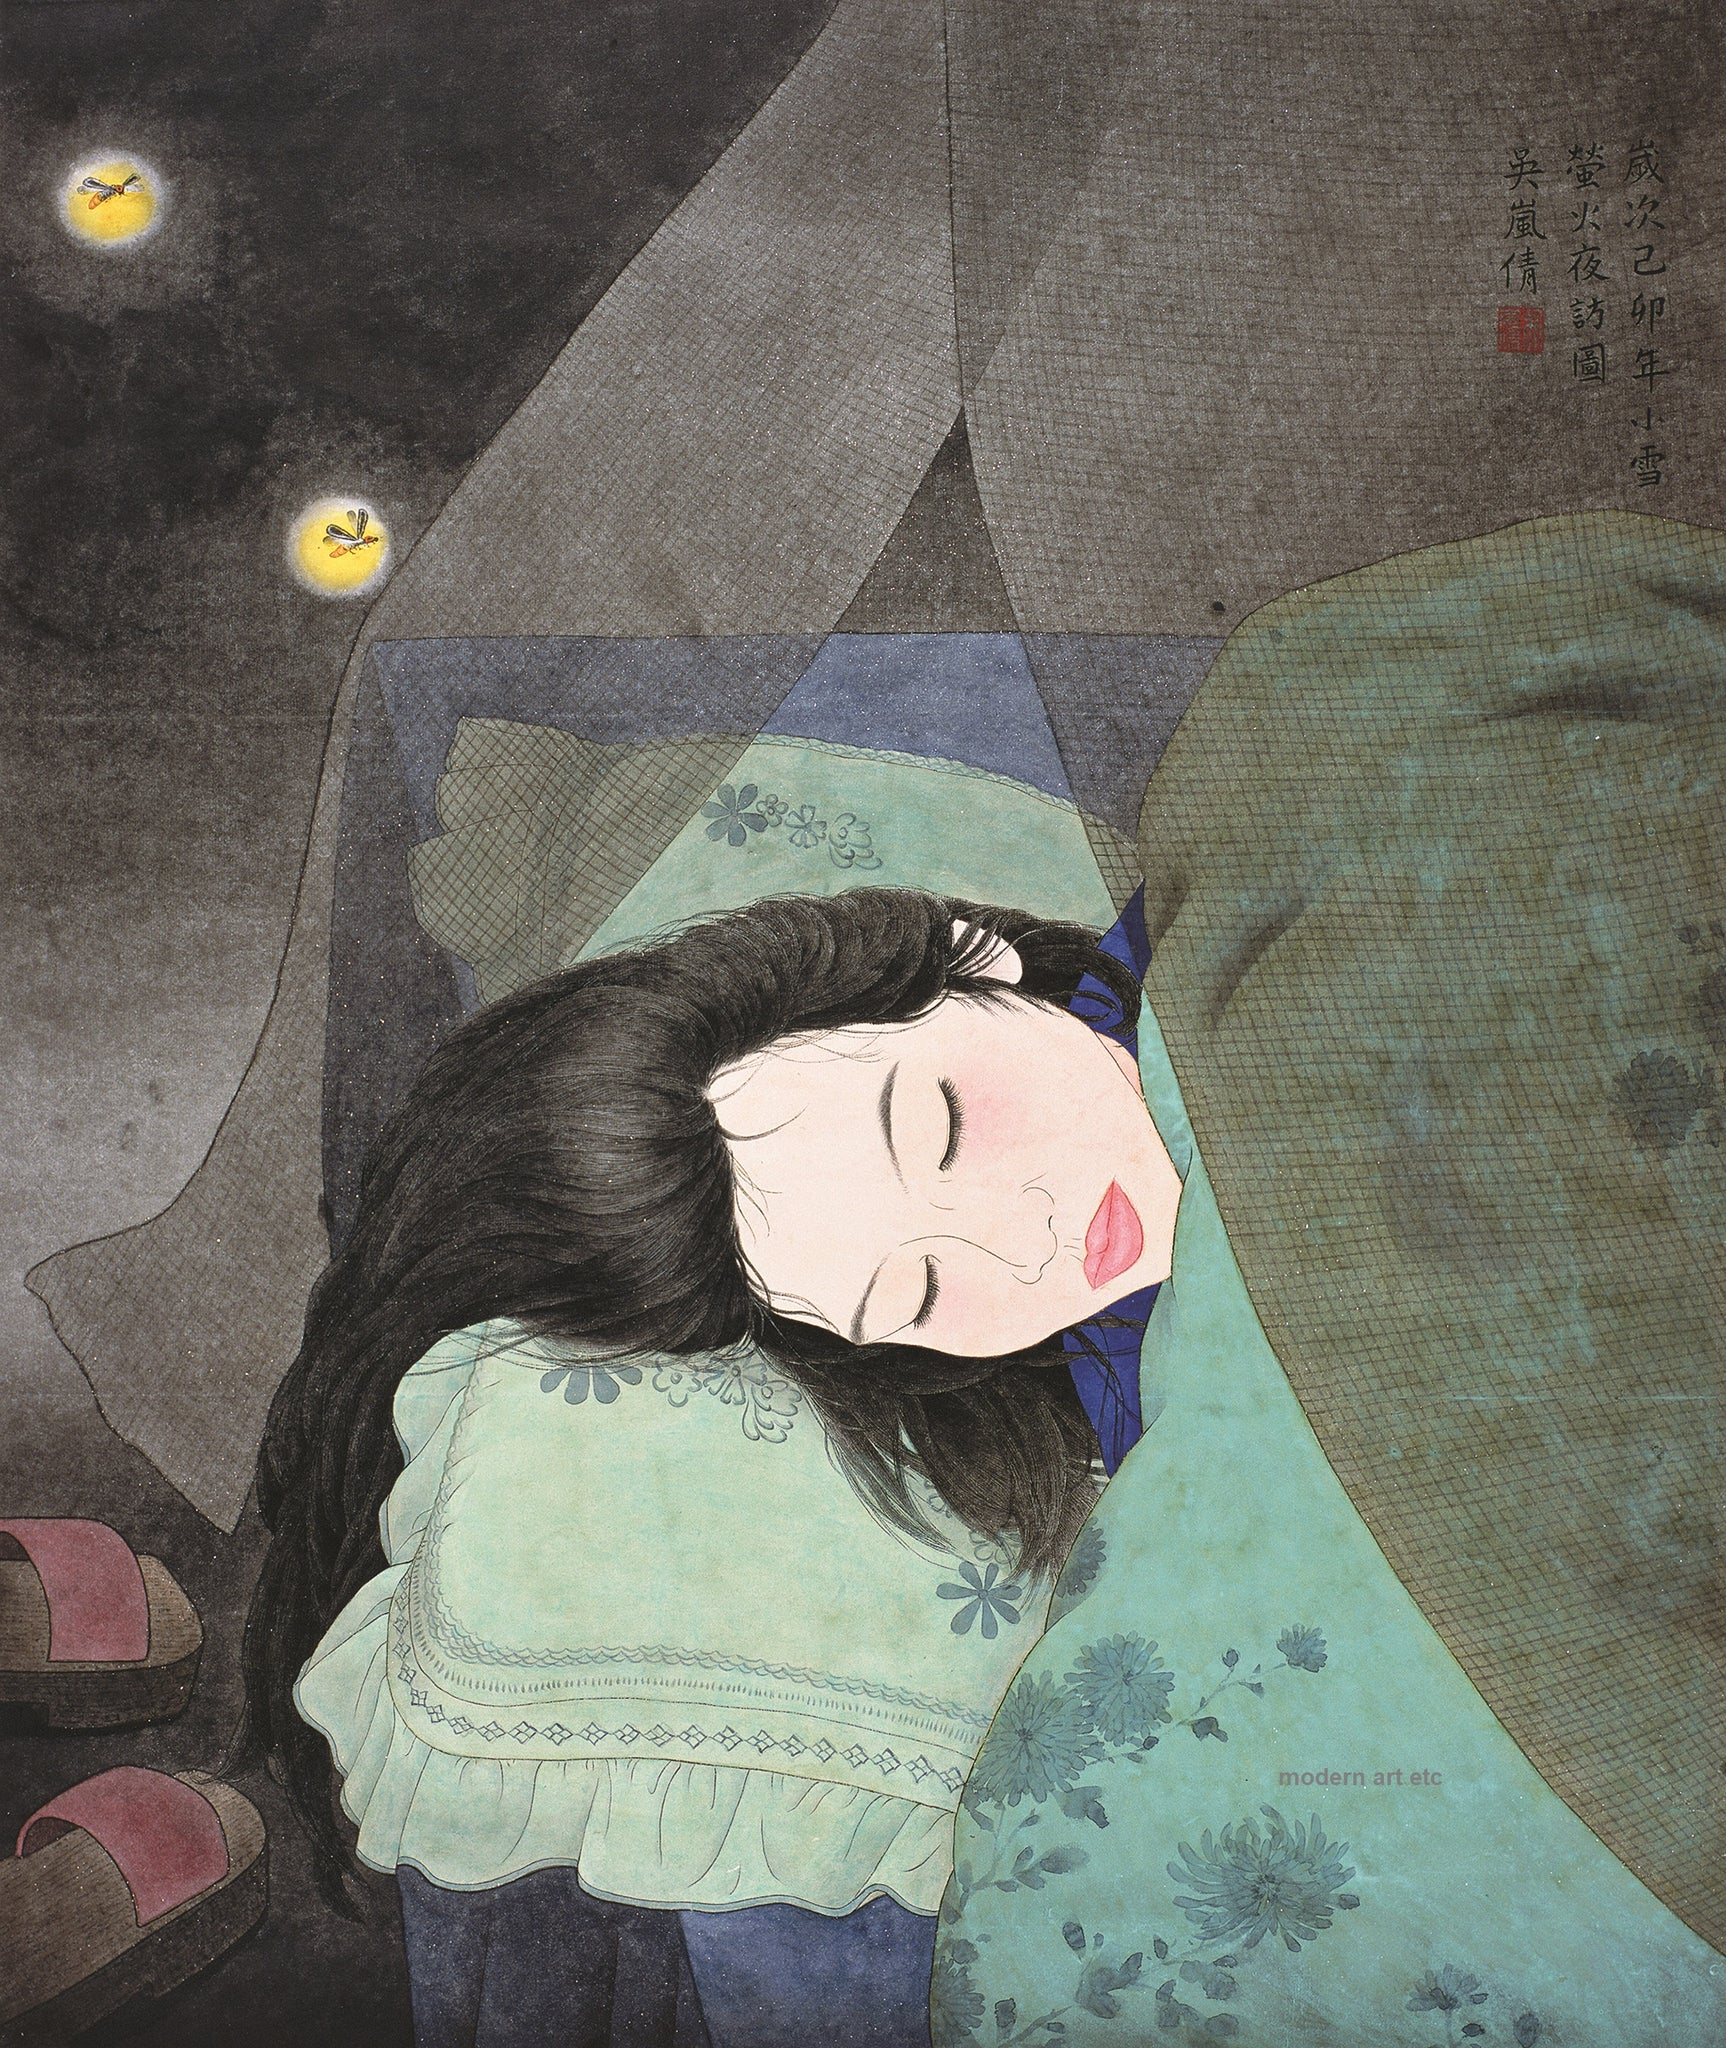 Contemporary Chinese Ink - Firefly Dream (2000)